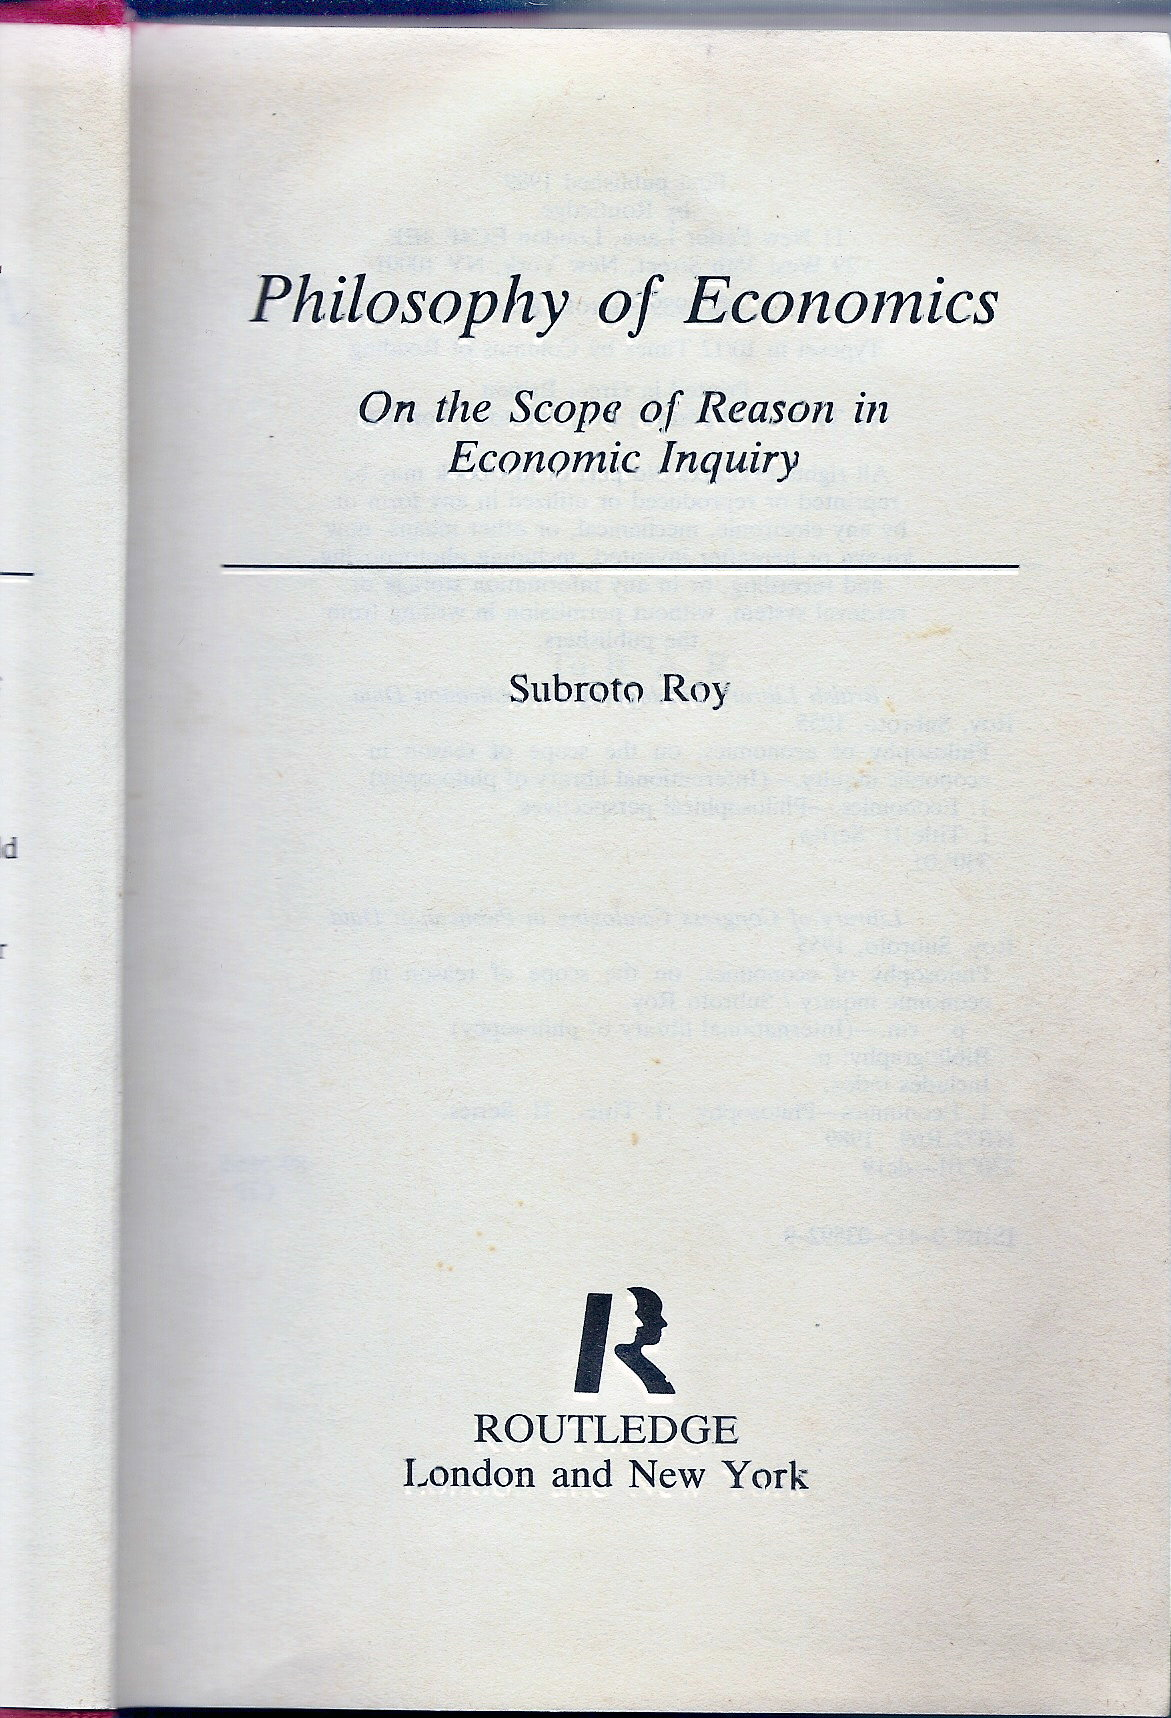 philosophy of economics Philosophy, politics and economics (ppe) is a bachelor's degree programme  with a long-standing tradition in the english-speaking academic arena, and is.